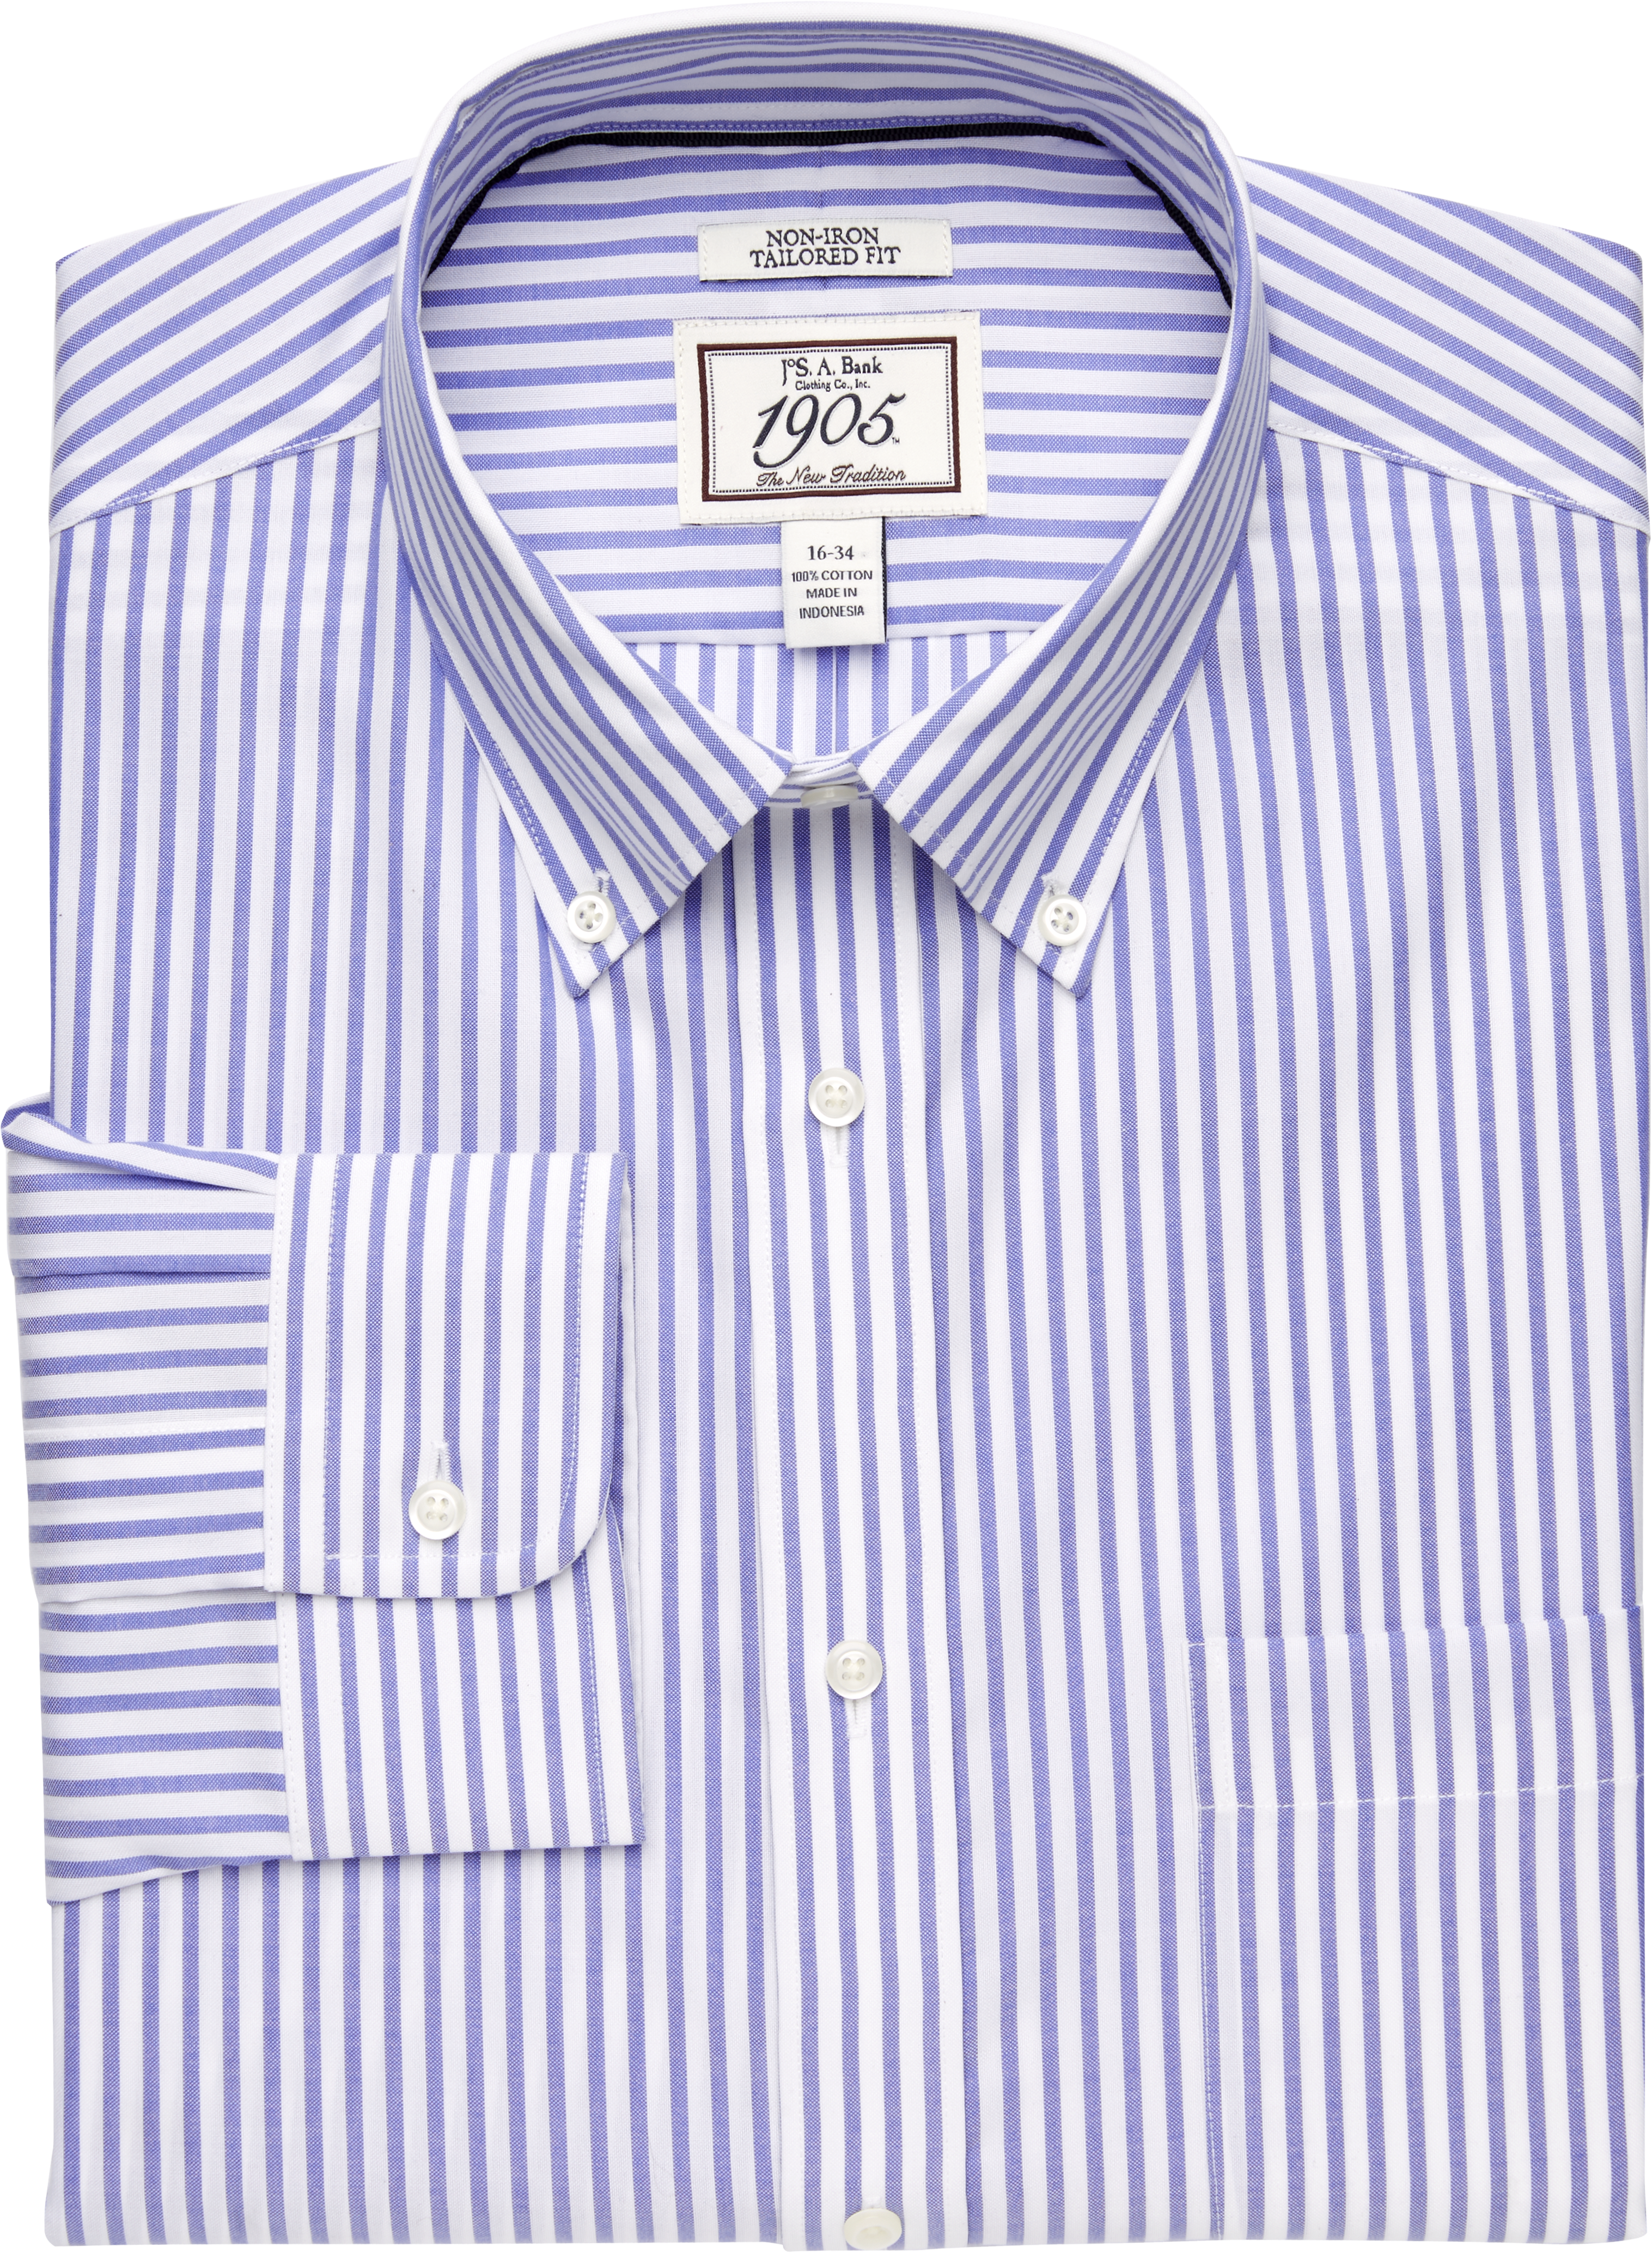 4cdffa10a11776 1905 Collection Tailored Fit Button-Down Collar Bengal Stripe Dress Shirt -  1905 Dress Shirts | Jos A Bank